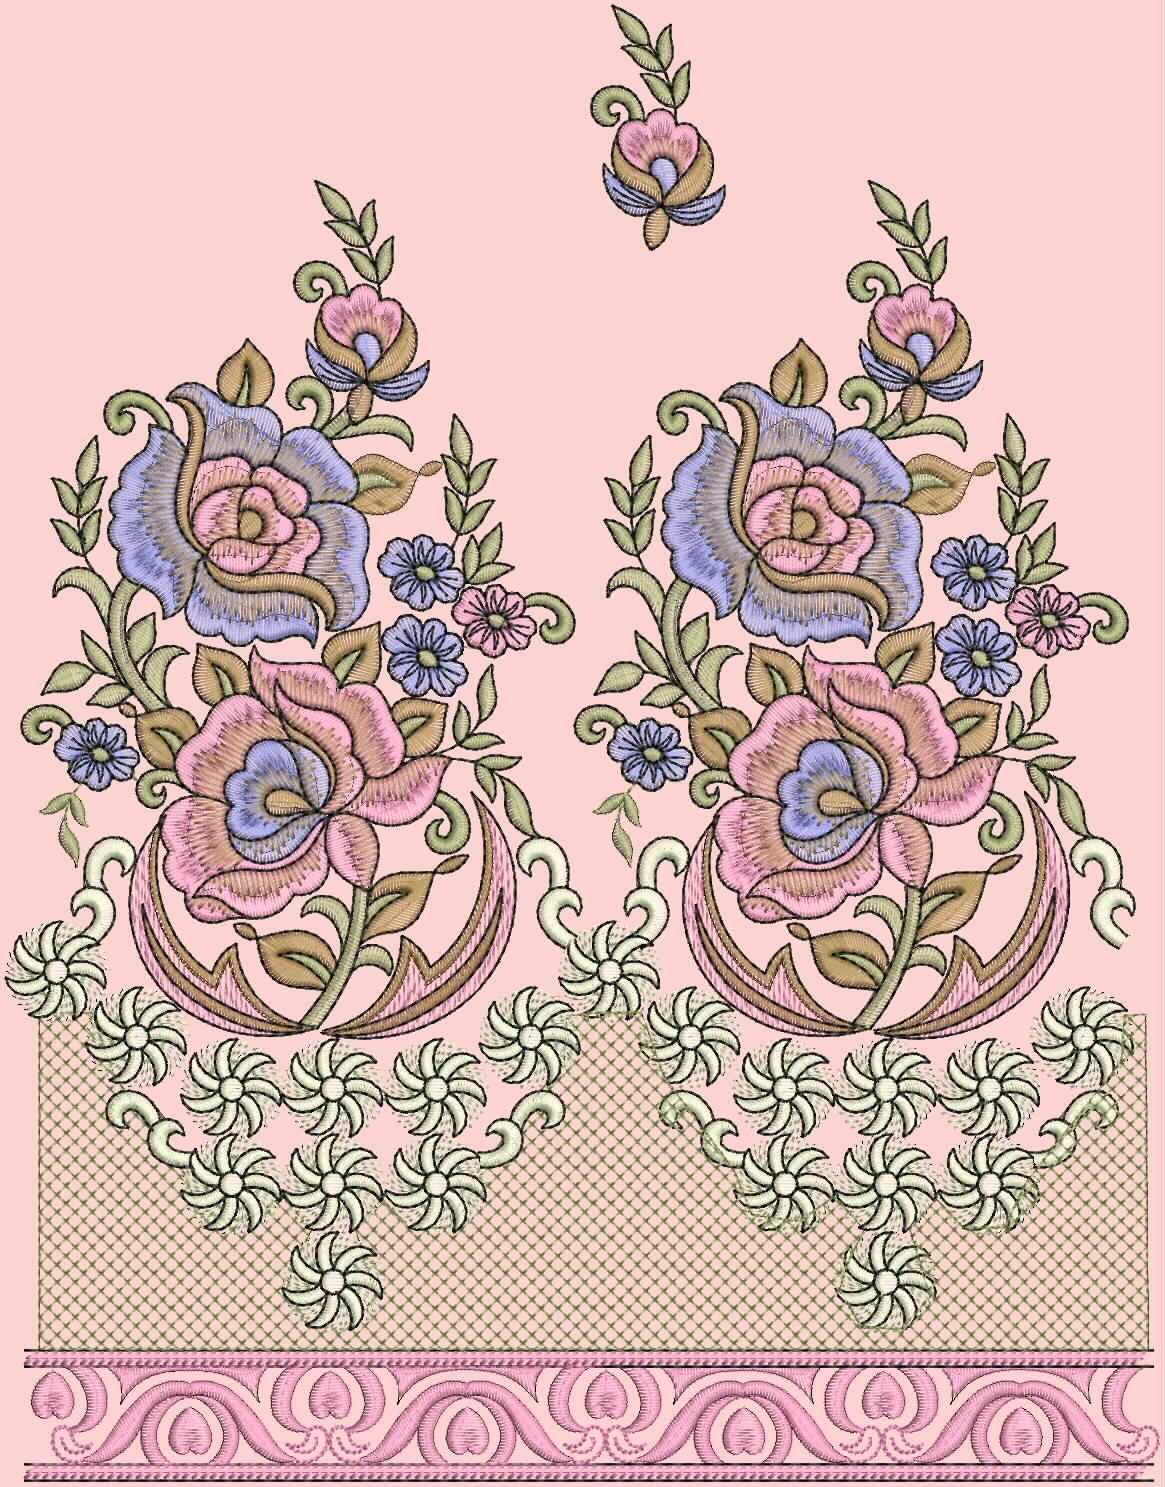 Outline embroidery designs for tablecloth - Machine Embroidery Designs For Suits Jpg 1165 1487